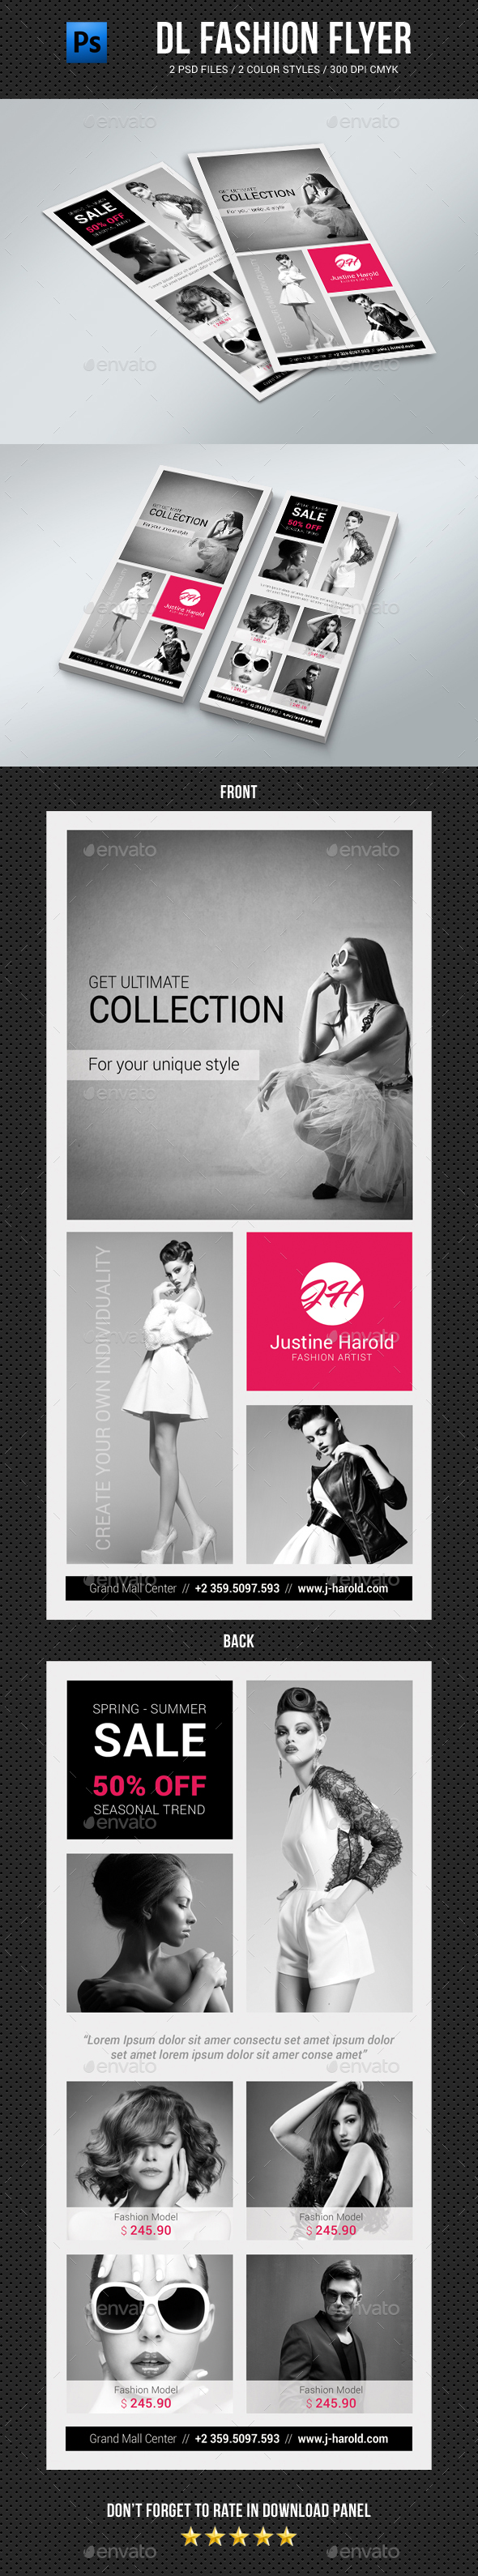 DL Fashion Flyer 06 - Commerce Flyers